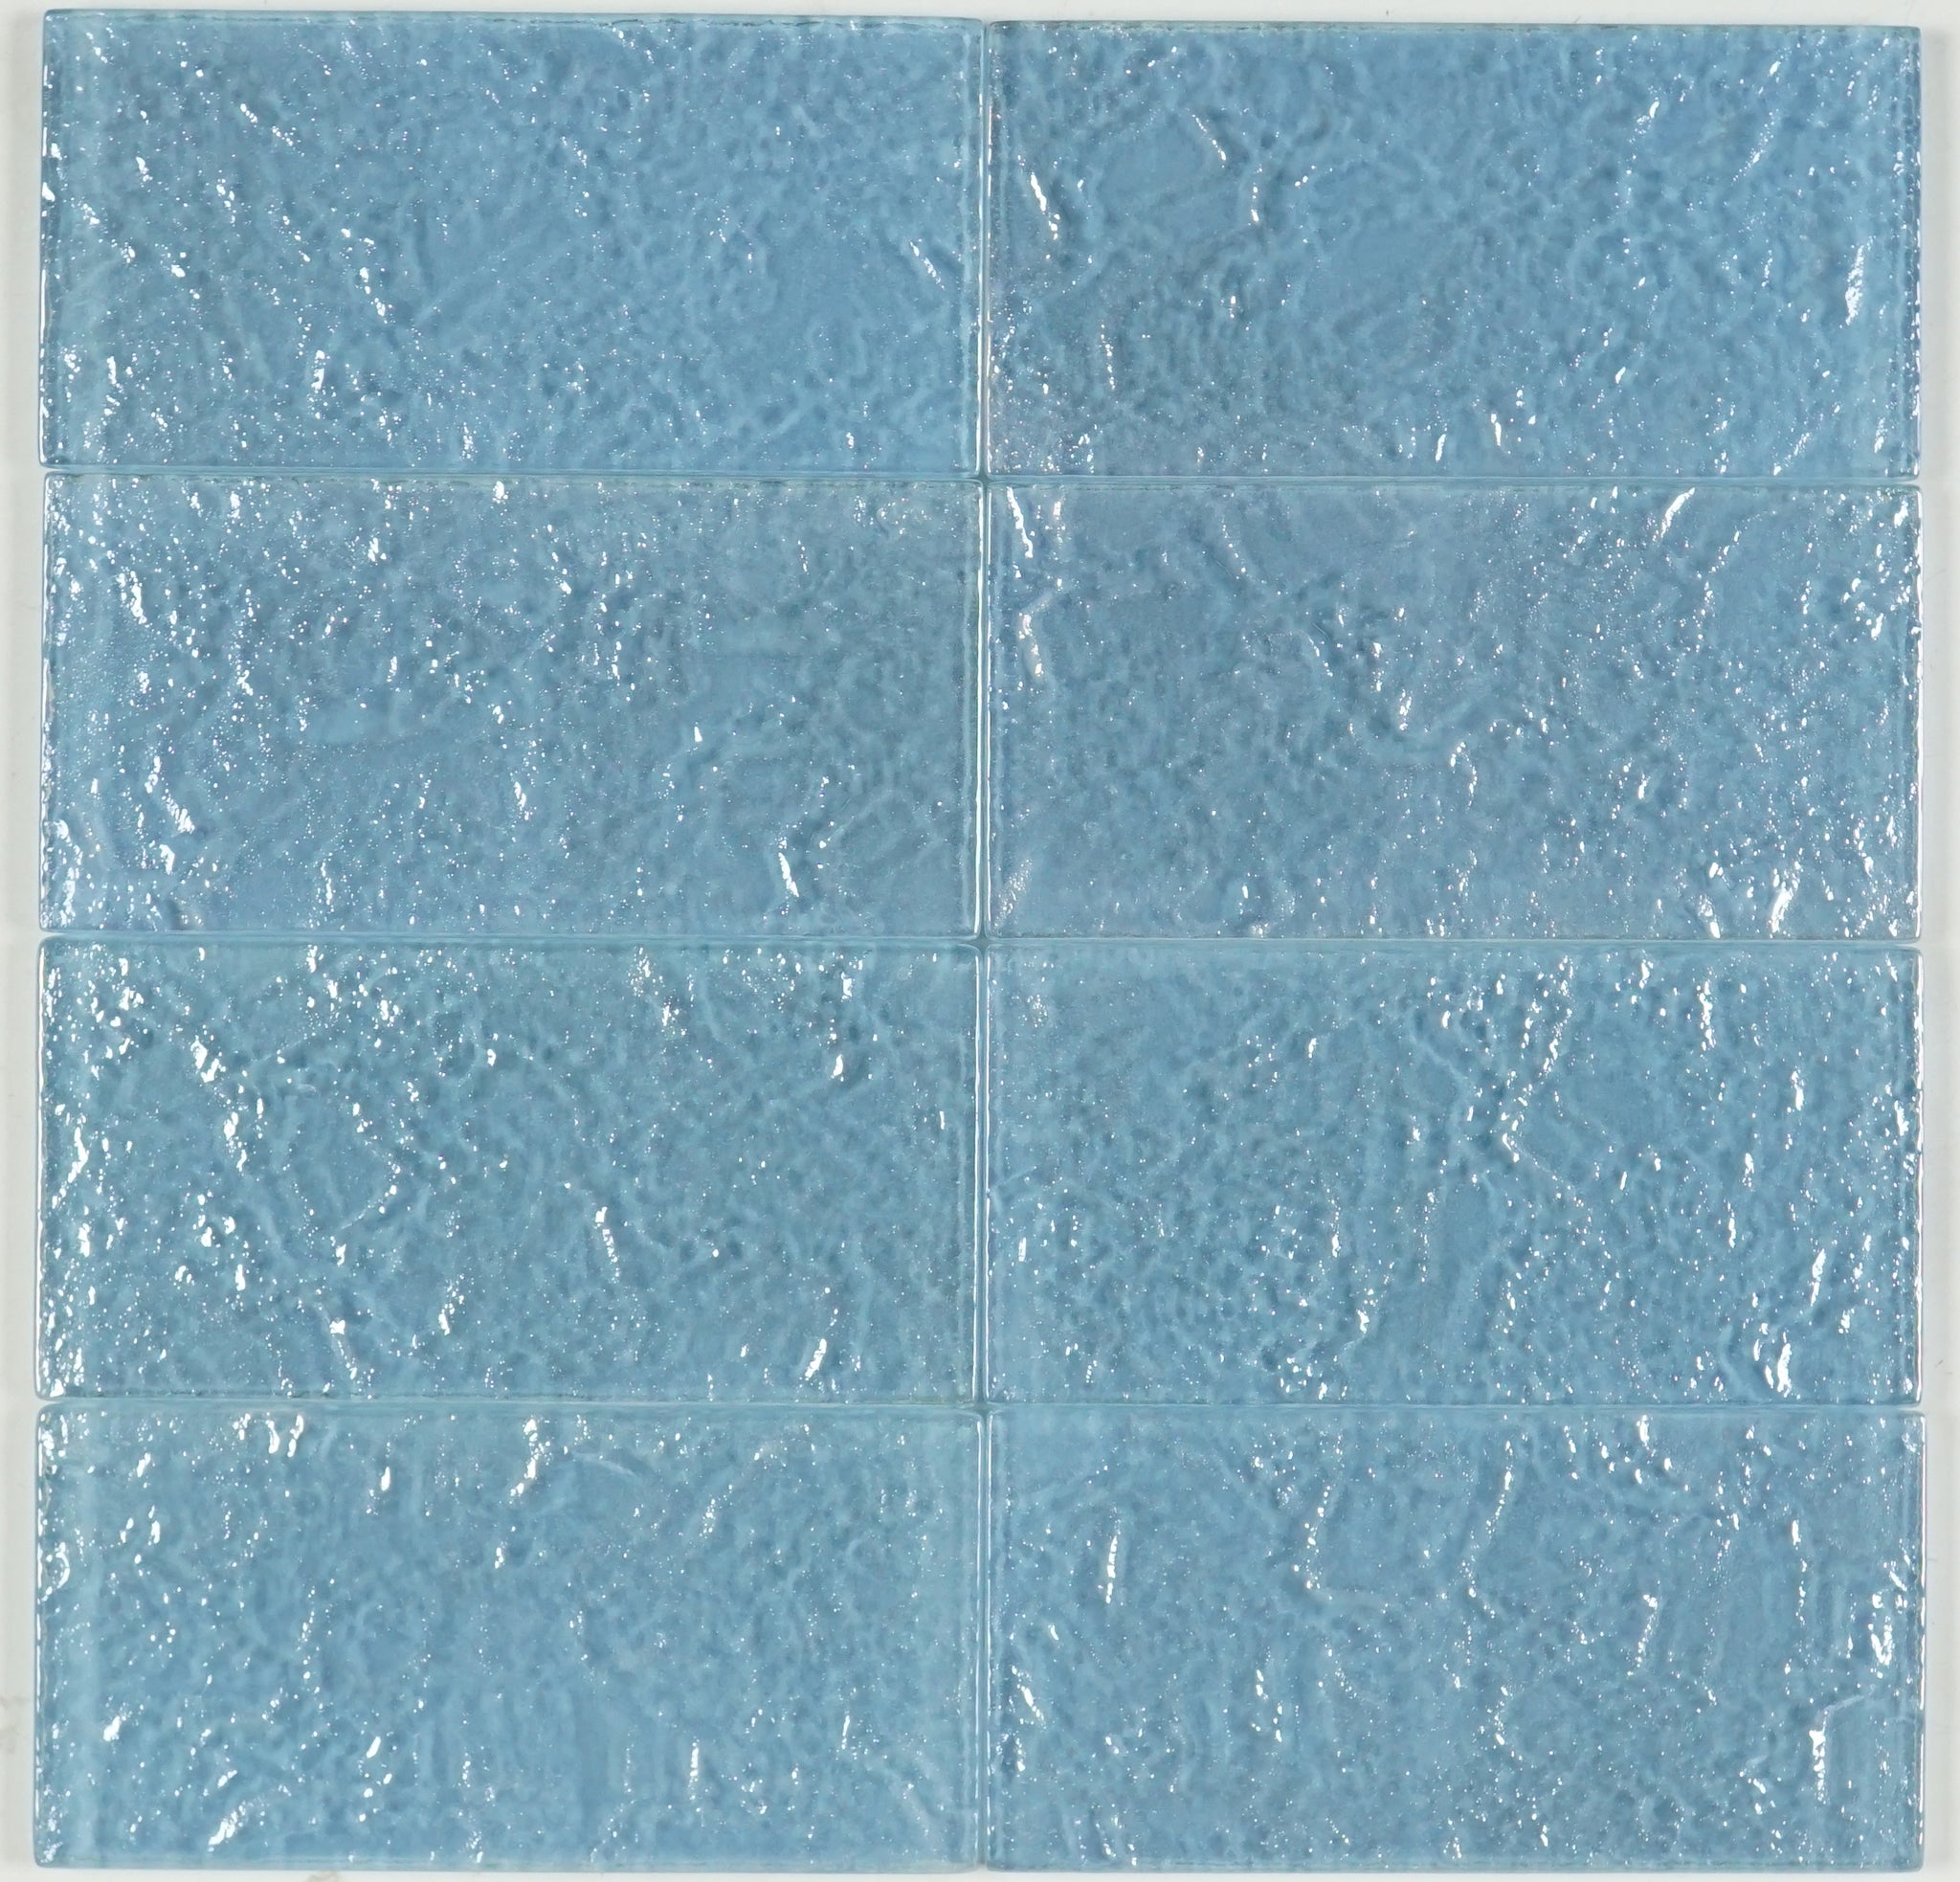 THEG-18 Blue 2x4 Subway Tile Glass Mosaic Backsplash Wall Tile ...